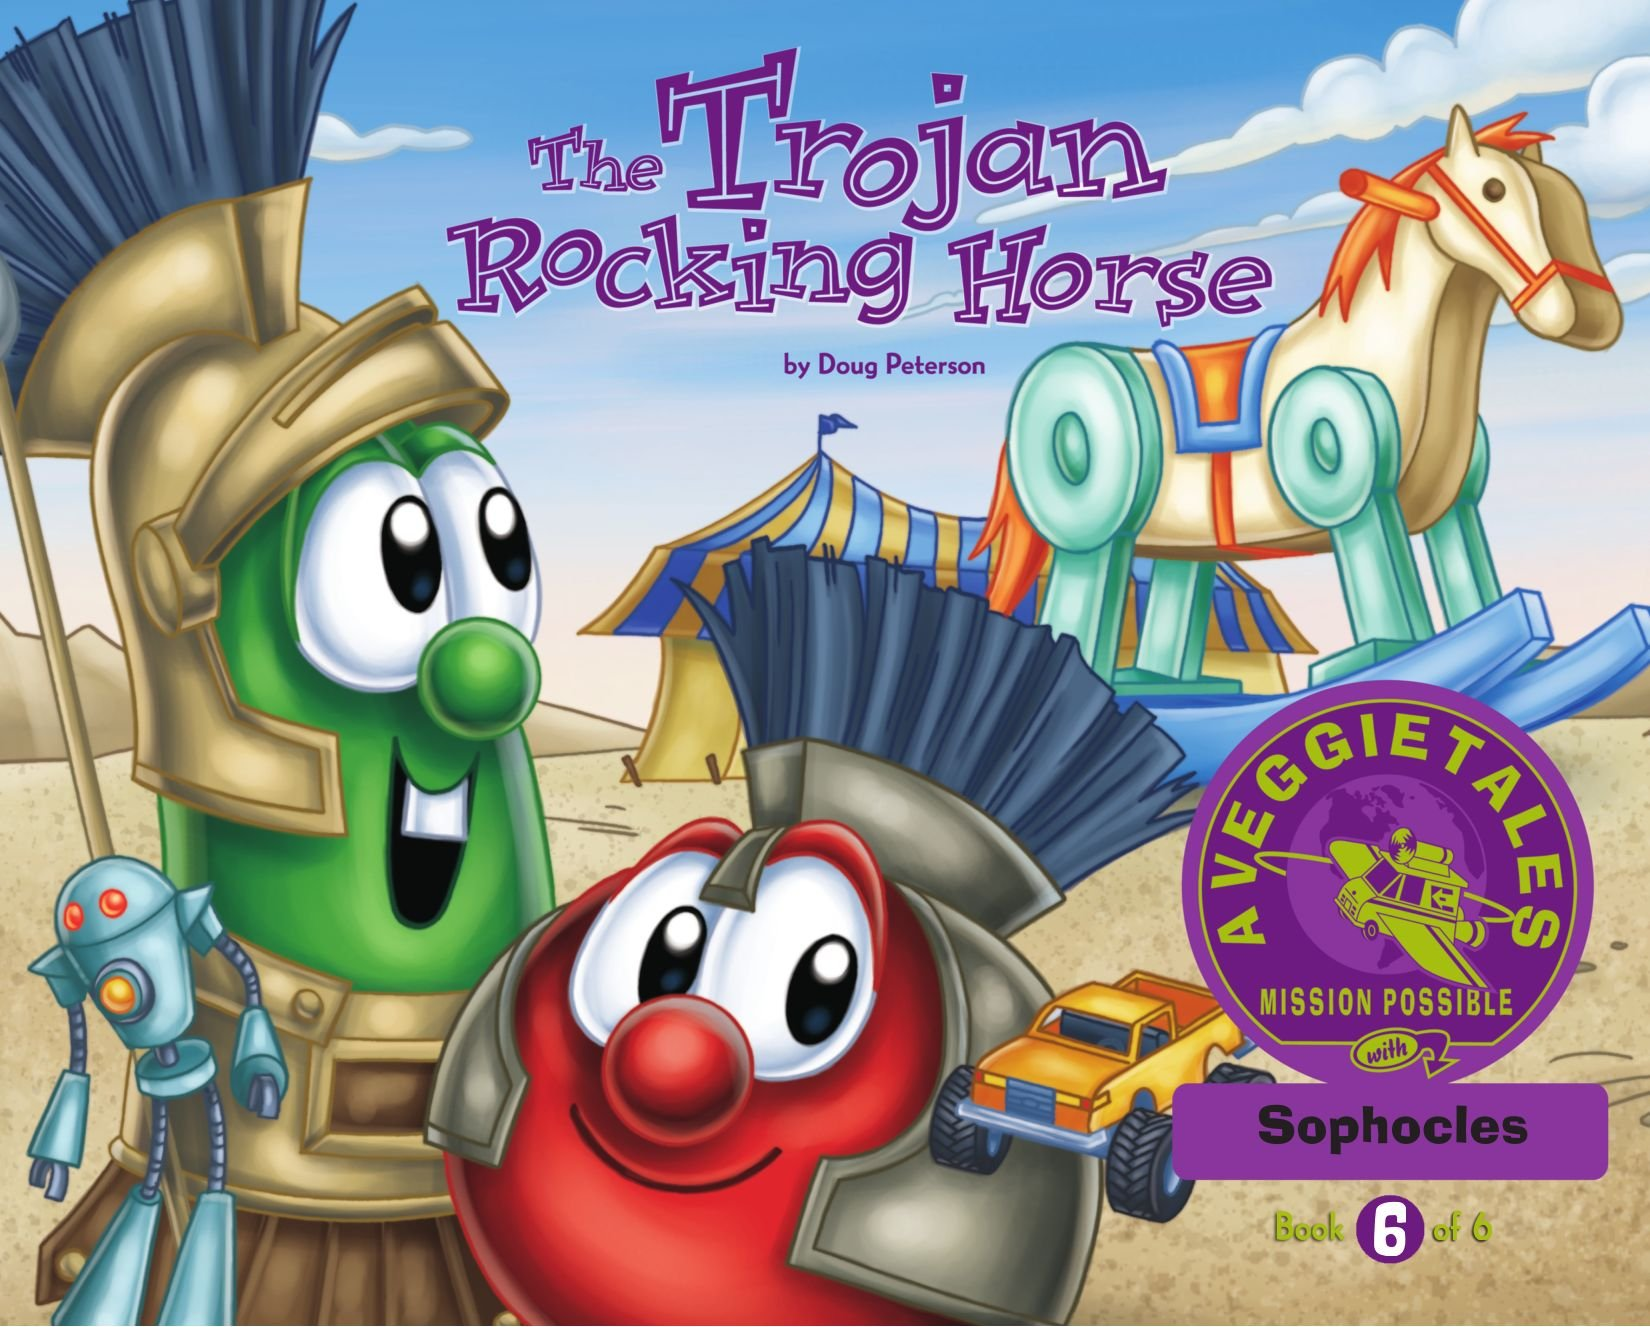 Download The Trojan Rocking Horse - VeggieTales Mission Possible Adventure Series #6: Personalized for Sophocles (Girl) PDF ePub book